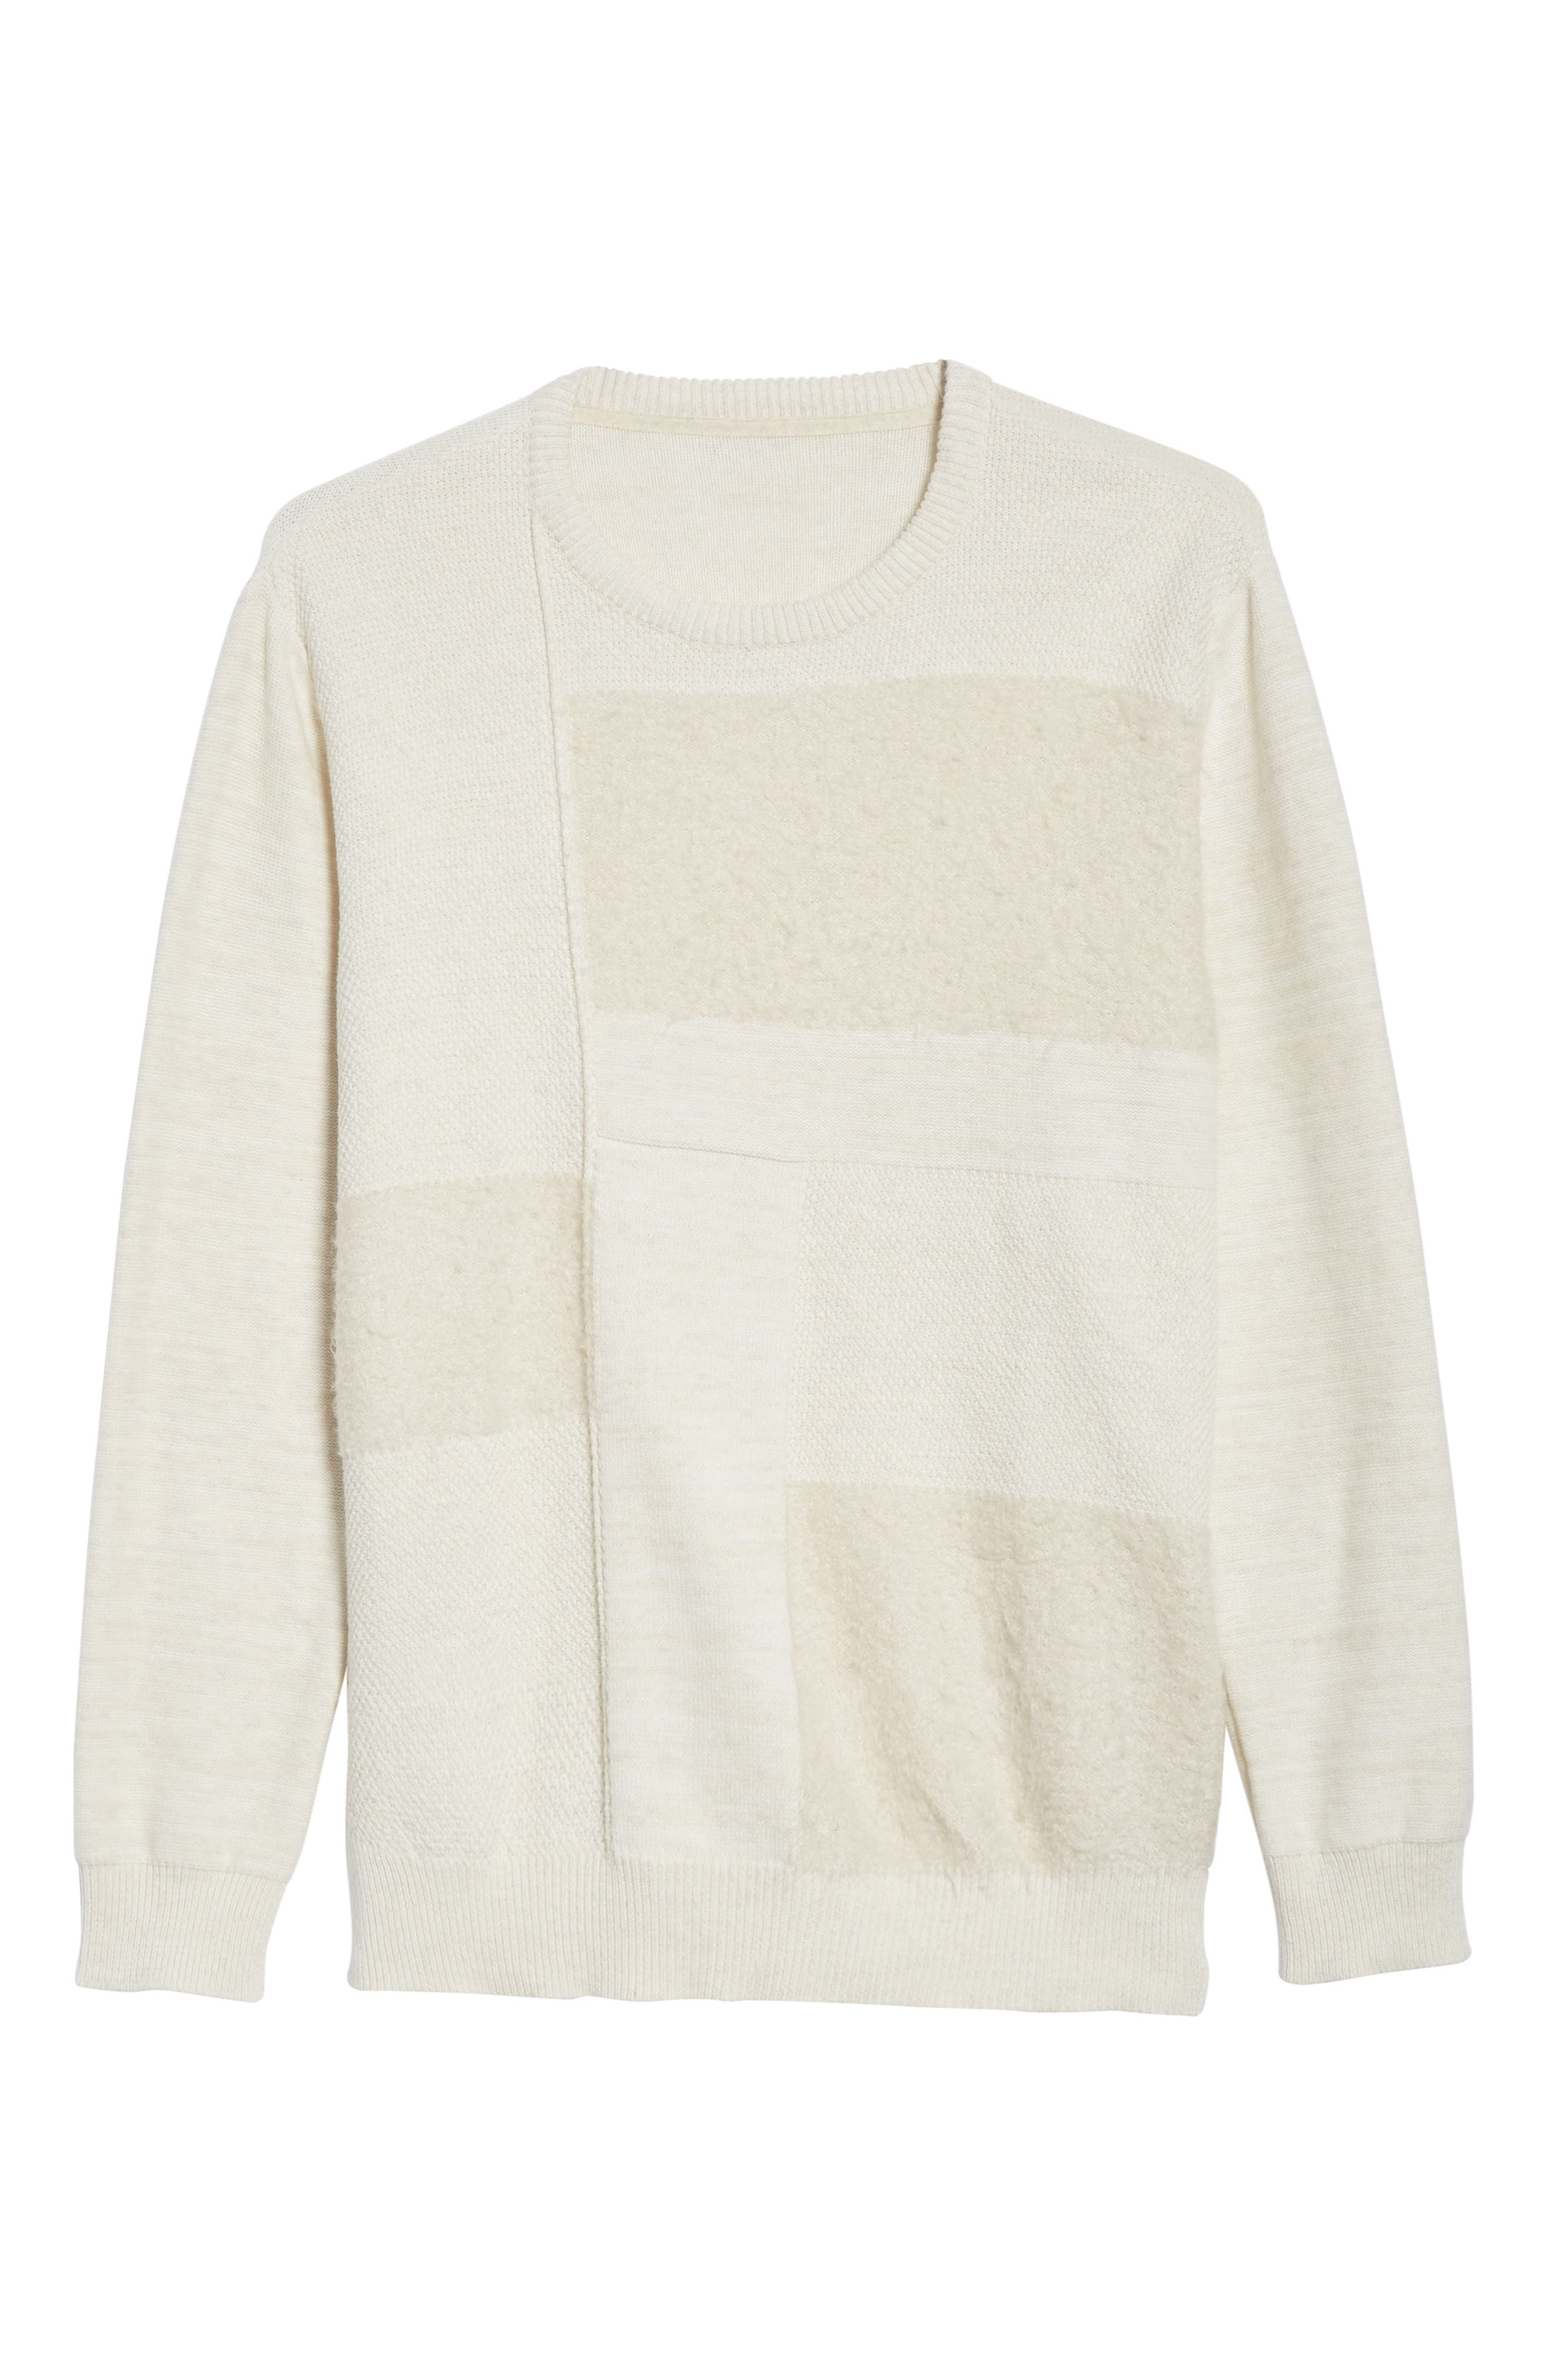 Oversized Silk Sweater,                             Alternate thumbnail 6, color,                             101